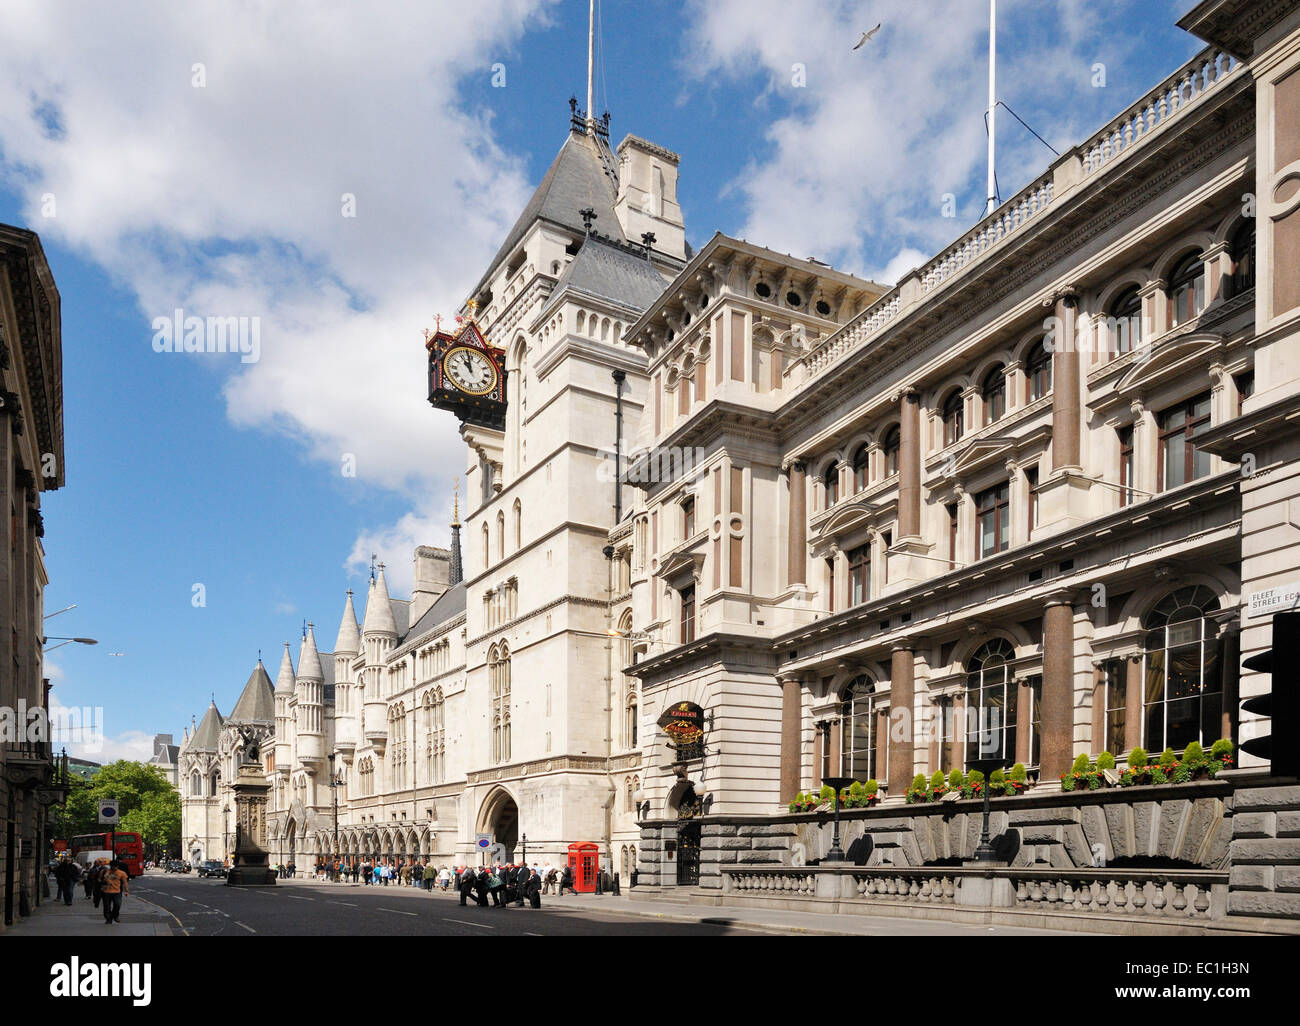 Royal Courts of Justice, Strand, Holborn, London, WC2A 2LL. Built by the architect G E Street in 1882. - Stock Image